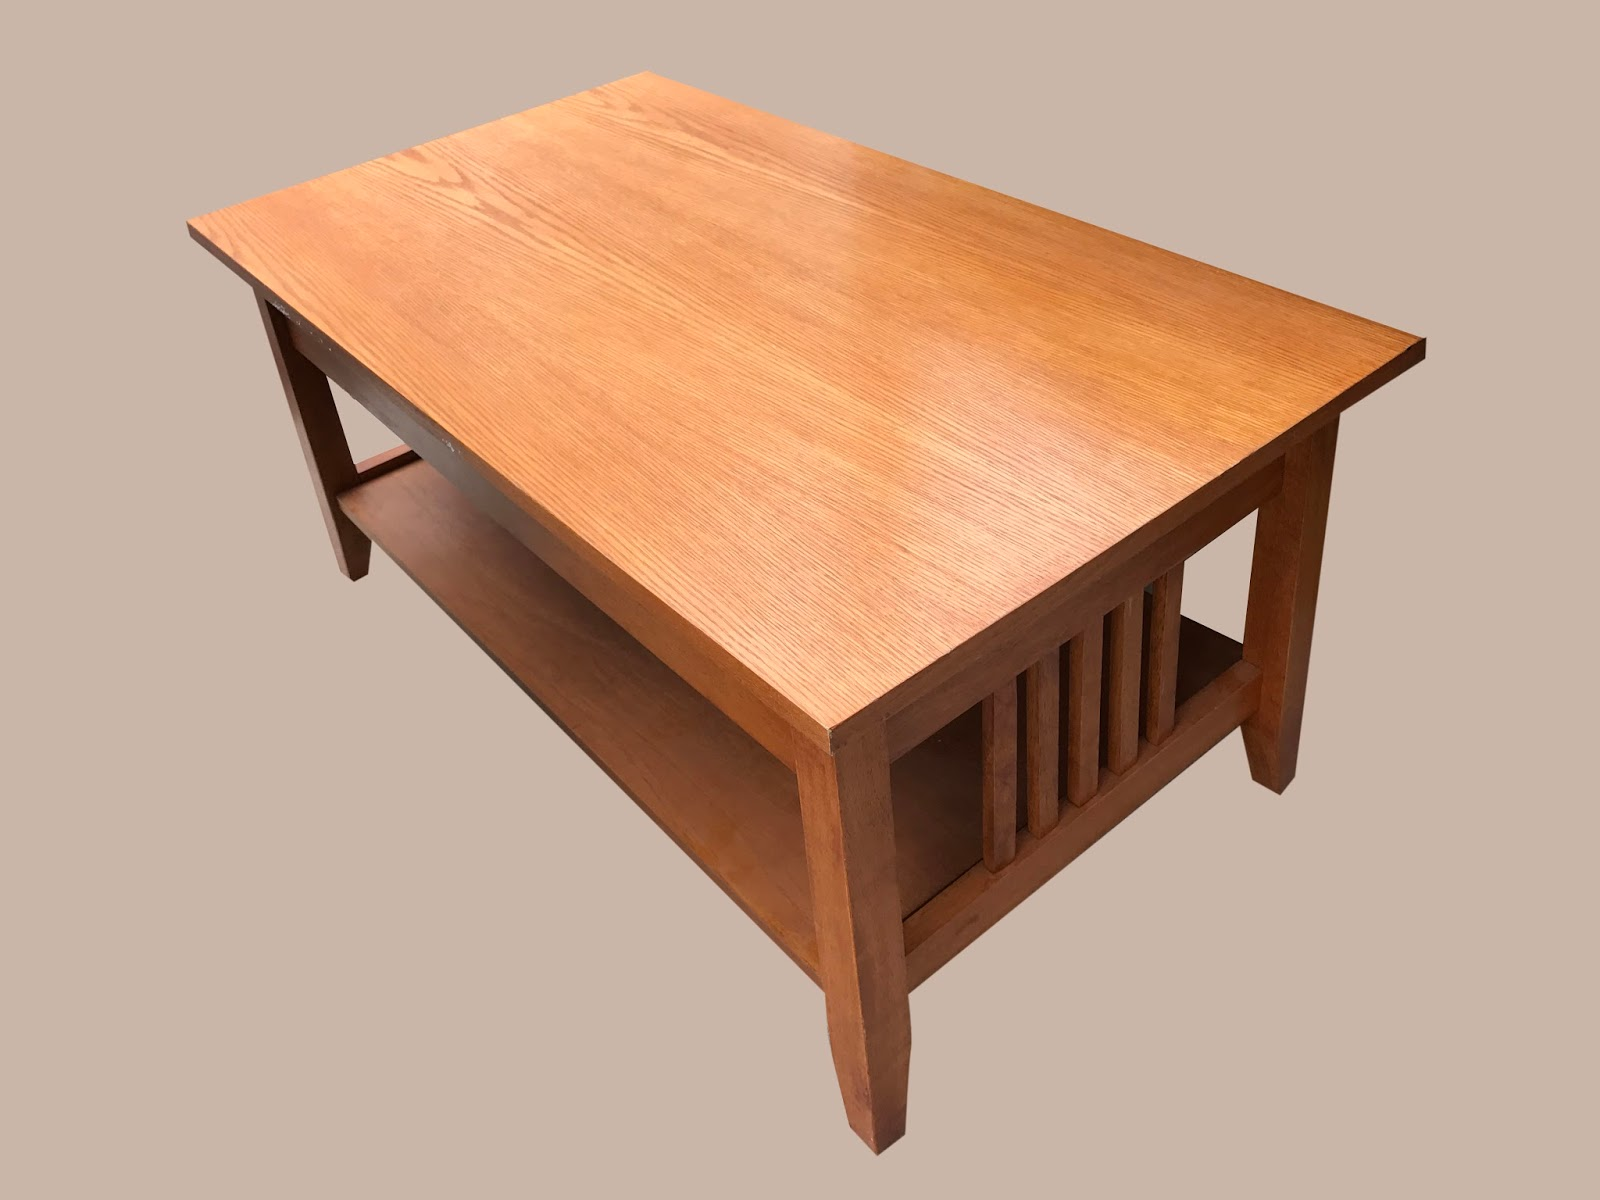 Uhuru Furniture & Collectibles: Mission Style Coffee Table ...